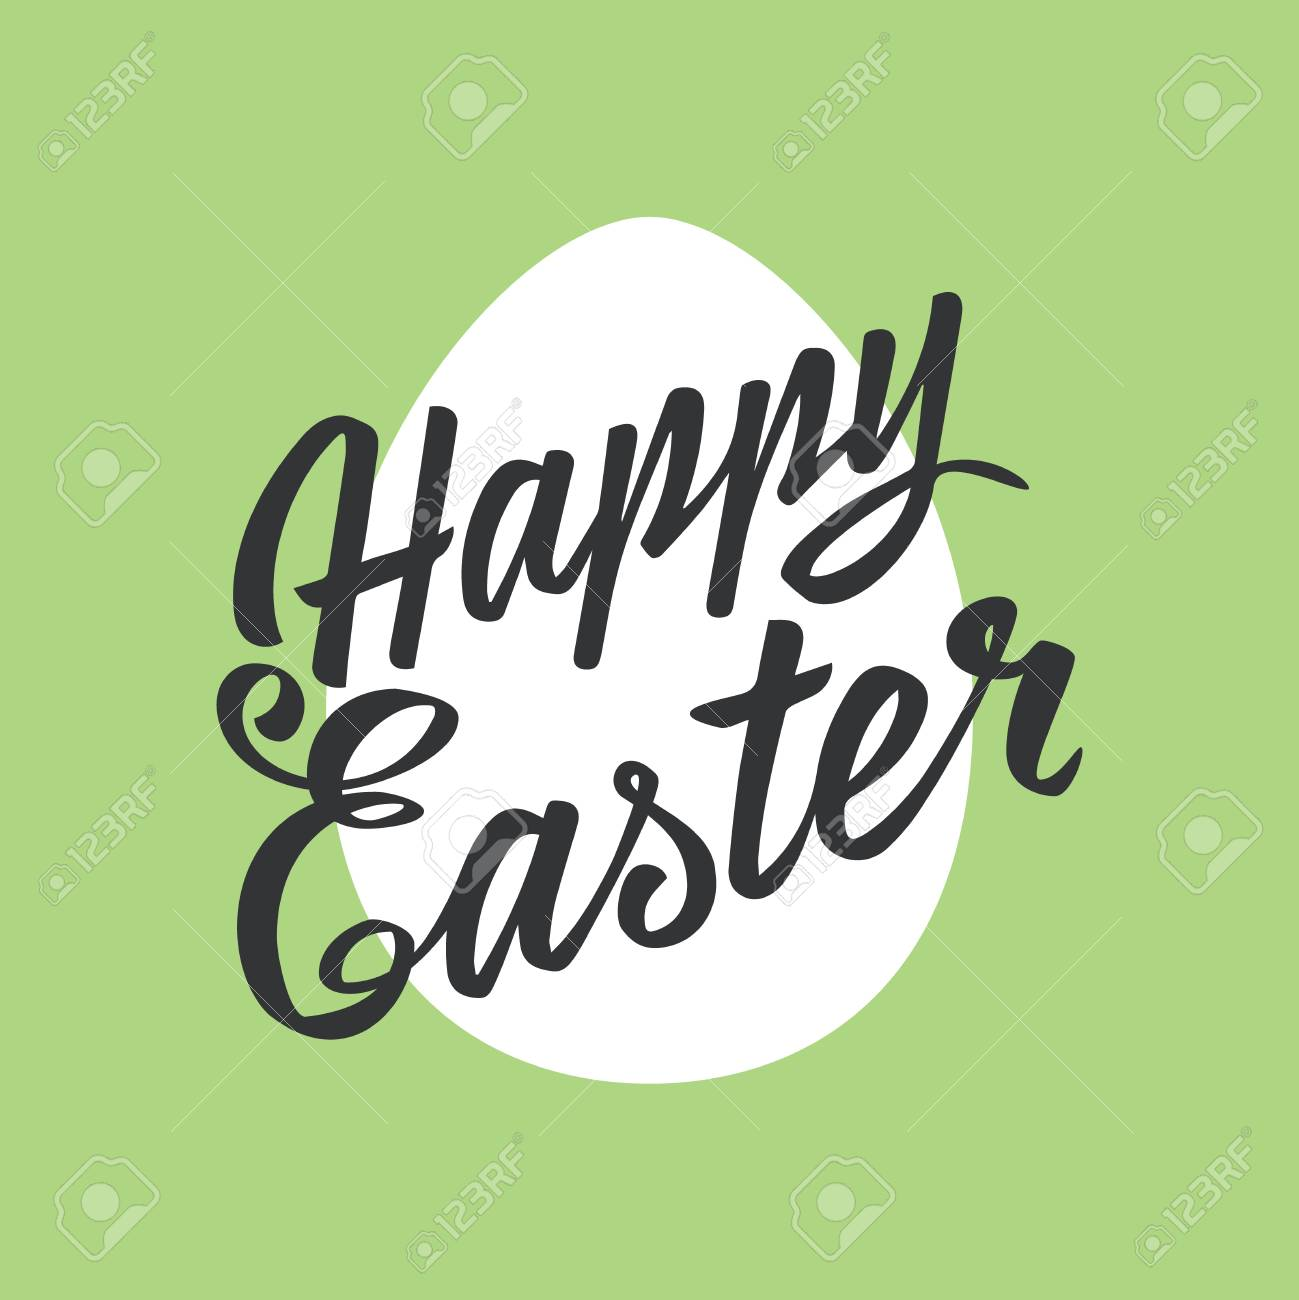 Happy easter greeting cardlettering egg on color background happy easter greeting cardlettering egg on color background typography inscription stock vector m4hsunfo